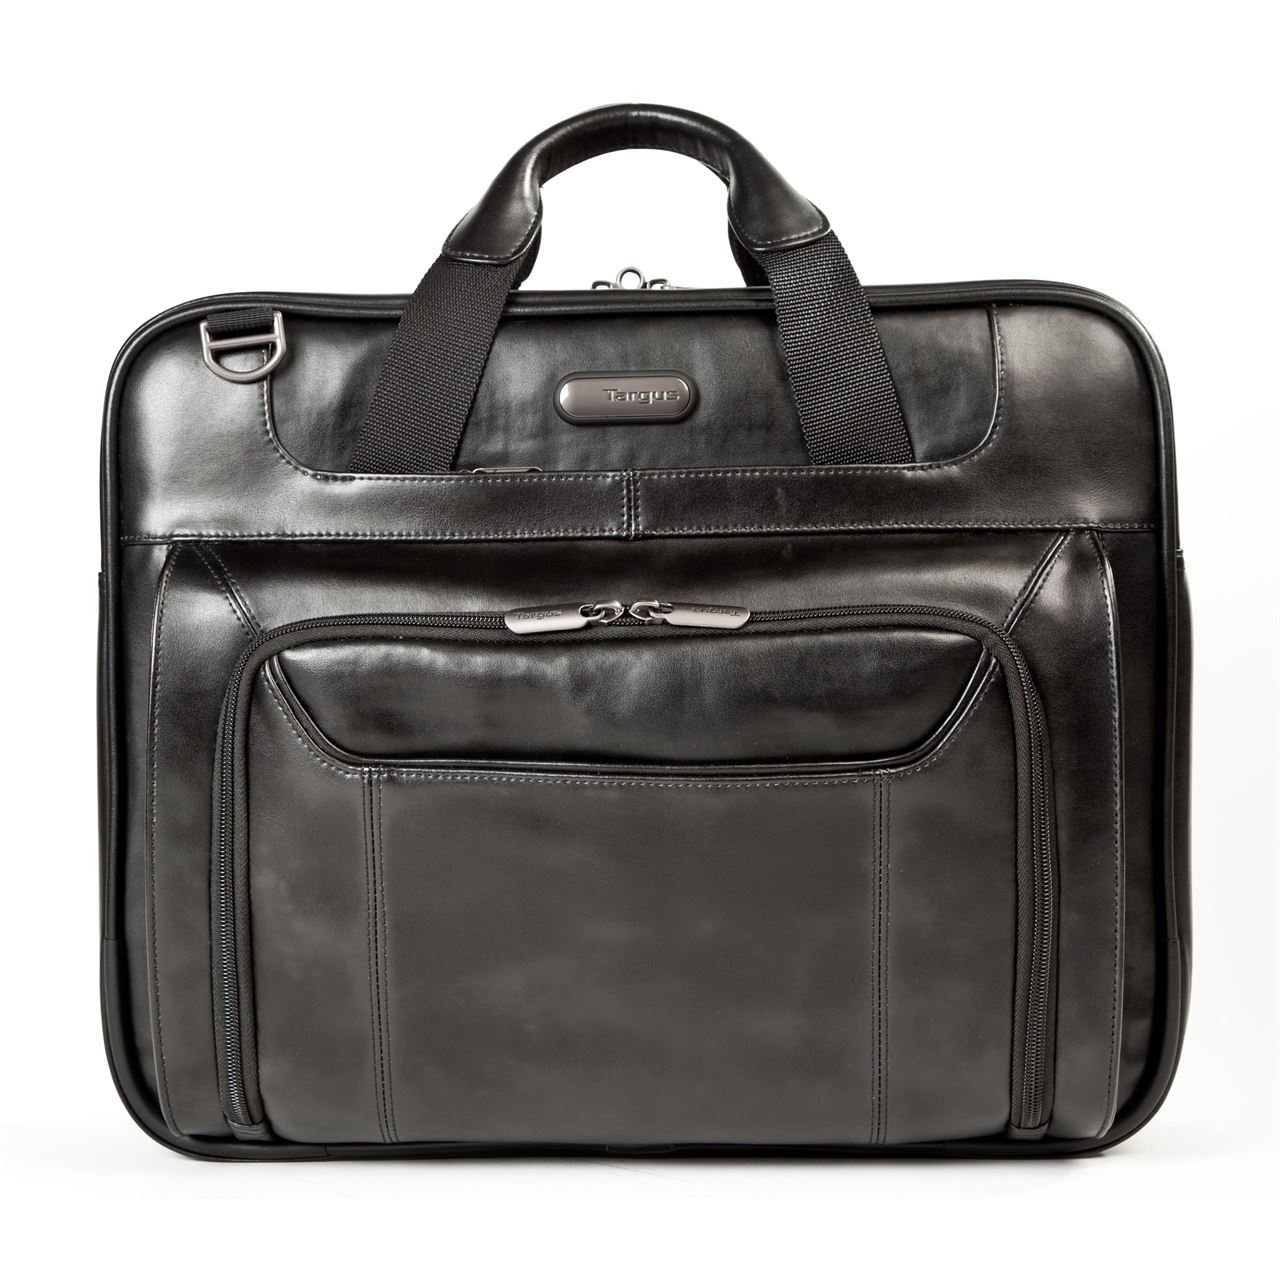 """case 14 The targus 14"""" checkpoint-friendly corporate traveler laptop case ( cuct02ua14s - black) has a split design that allows easy x-ray scanning at the  airport."""